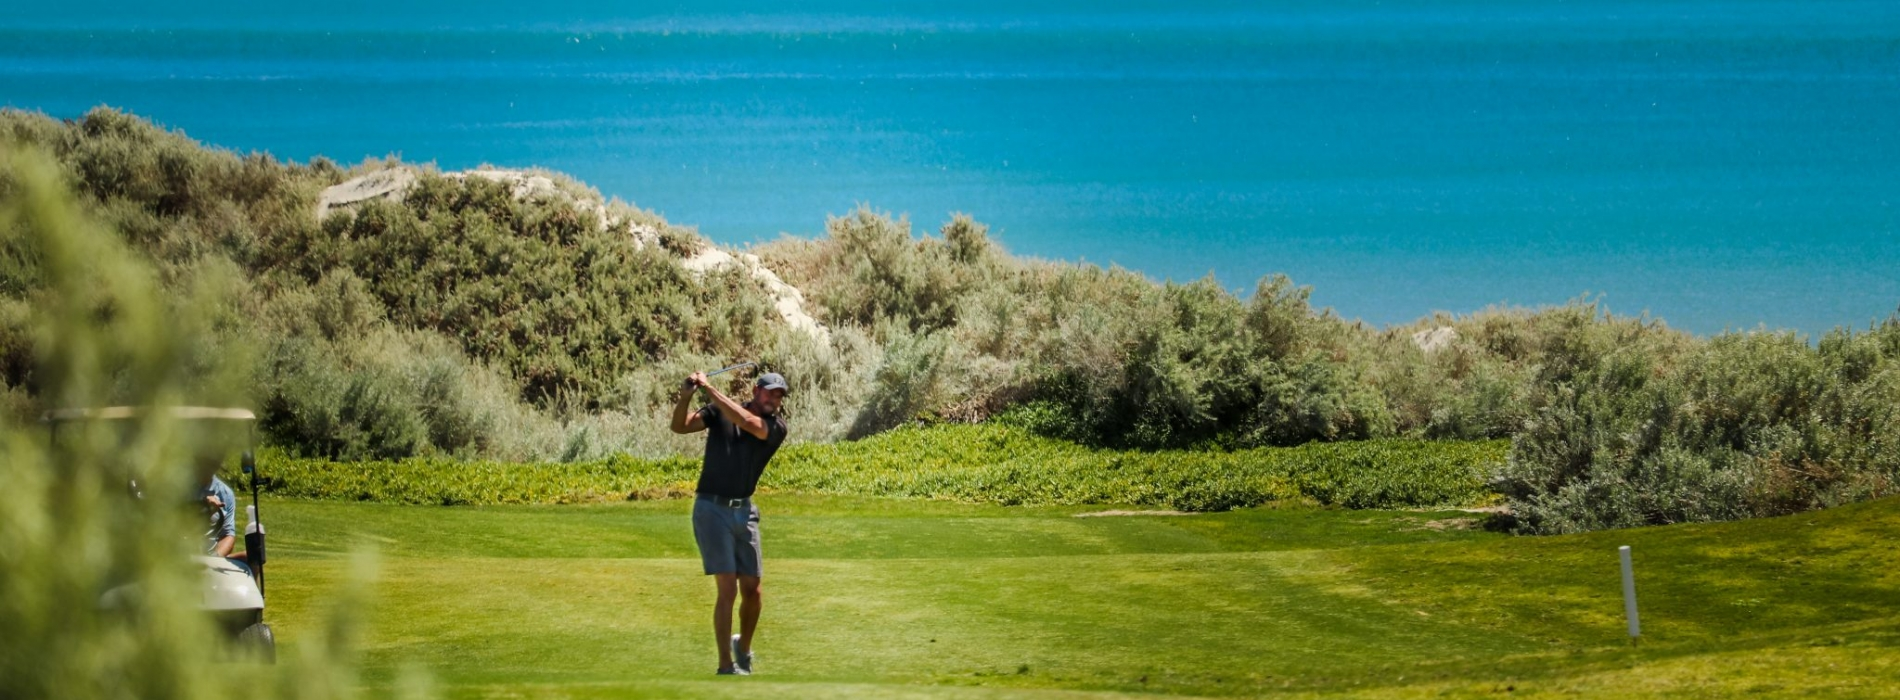 Man hits ball from the fairway with an ocean view in background